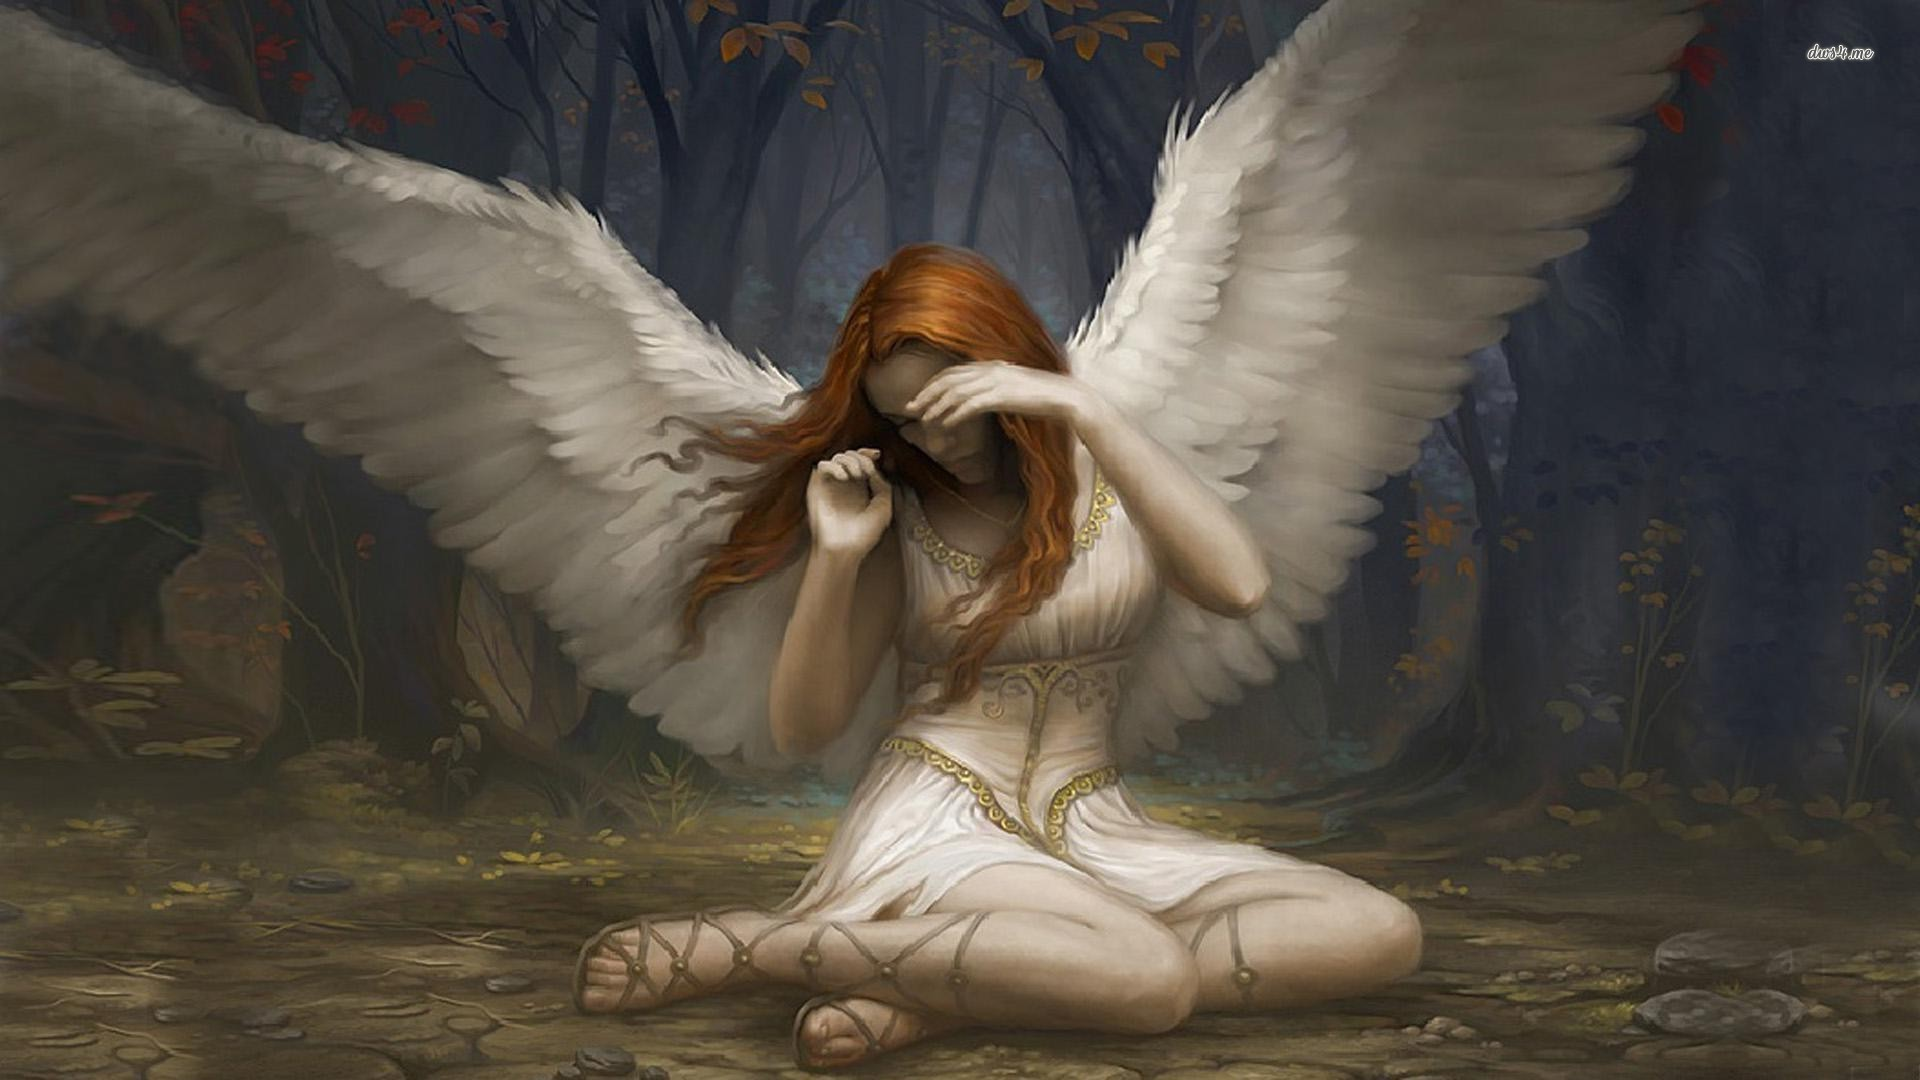 Magic The Gathering Angel Game Hd Wallpaper - Images, Photos, Pictures